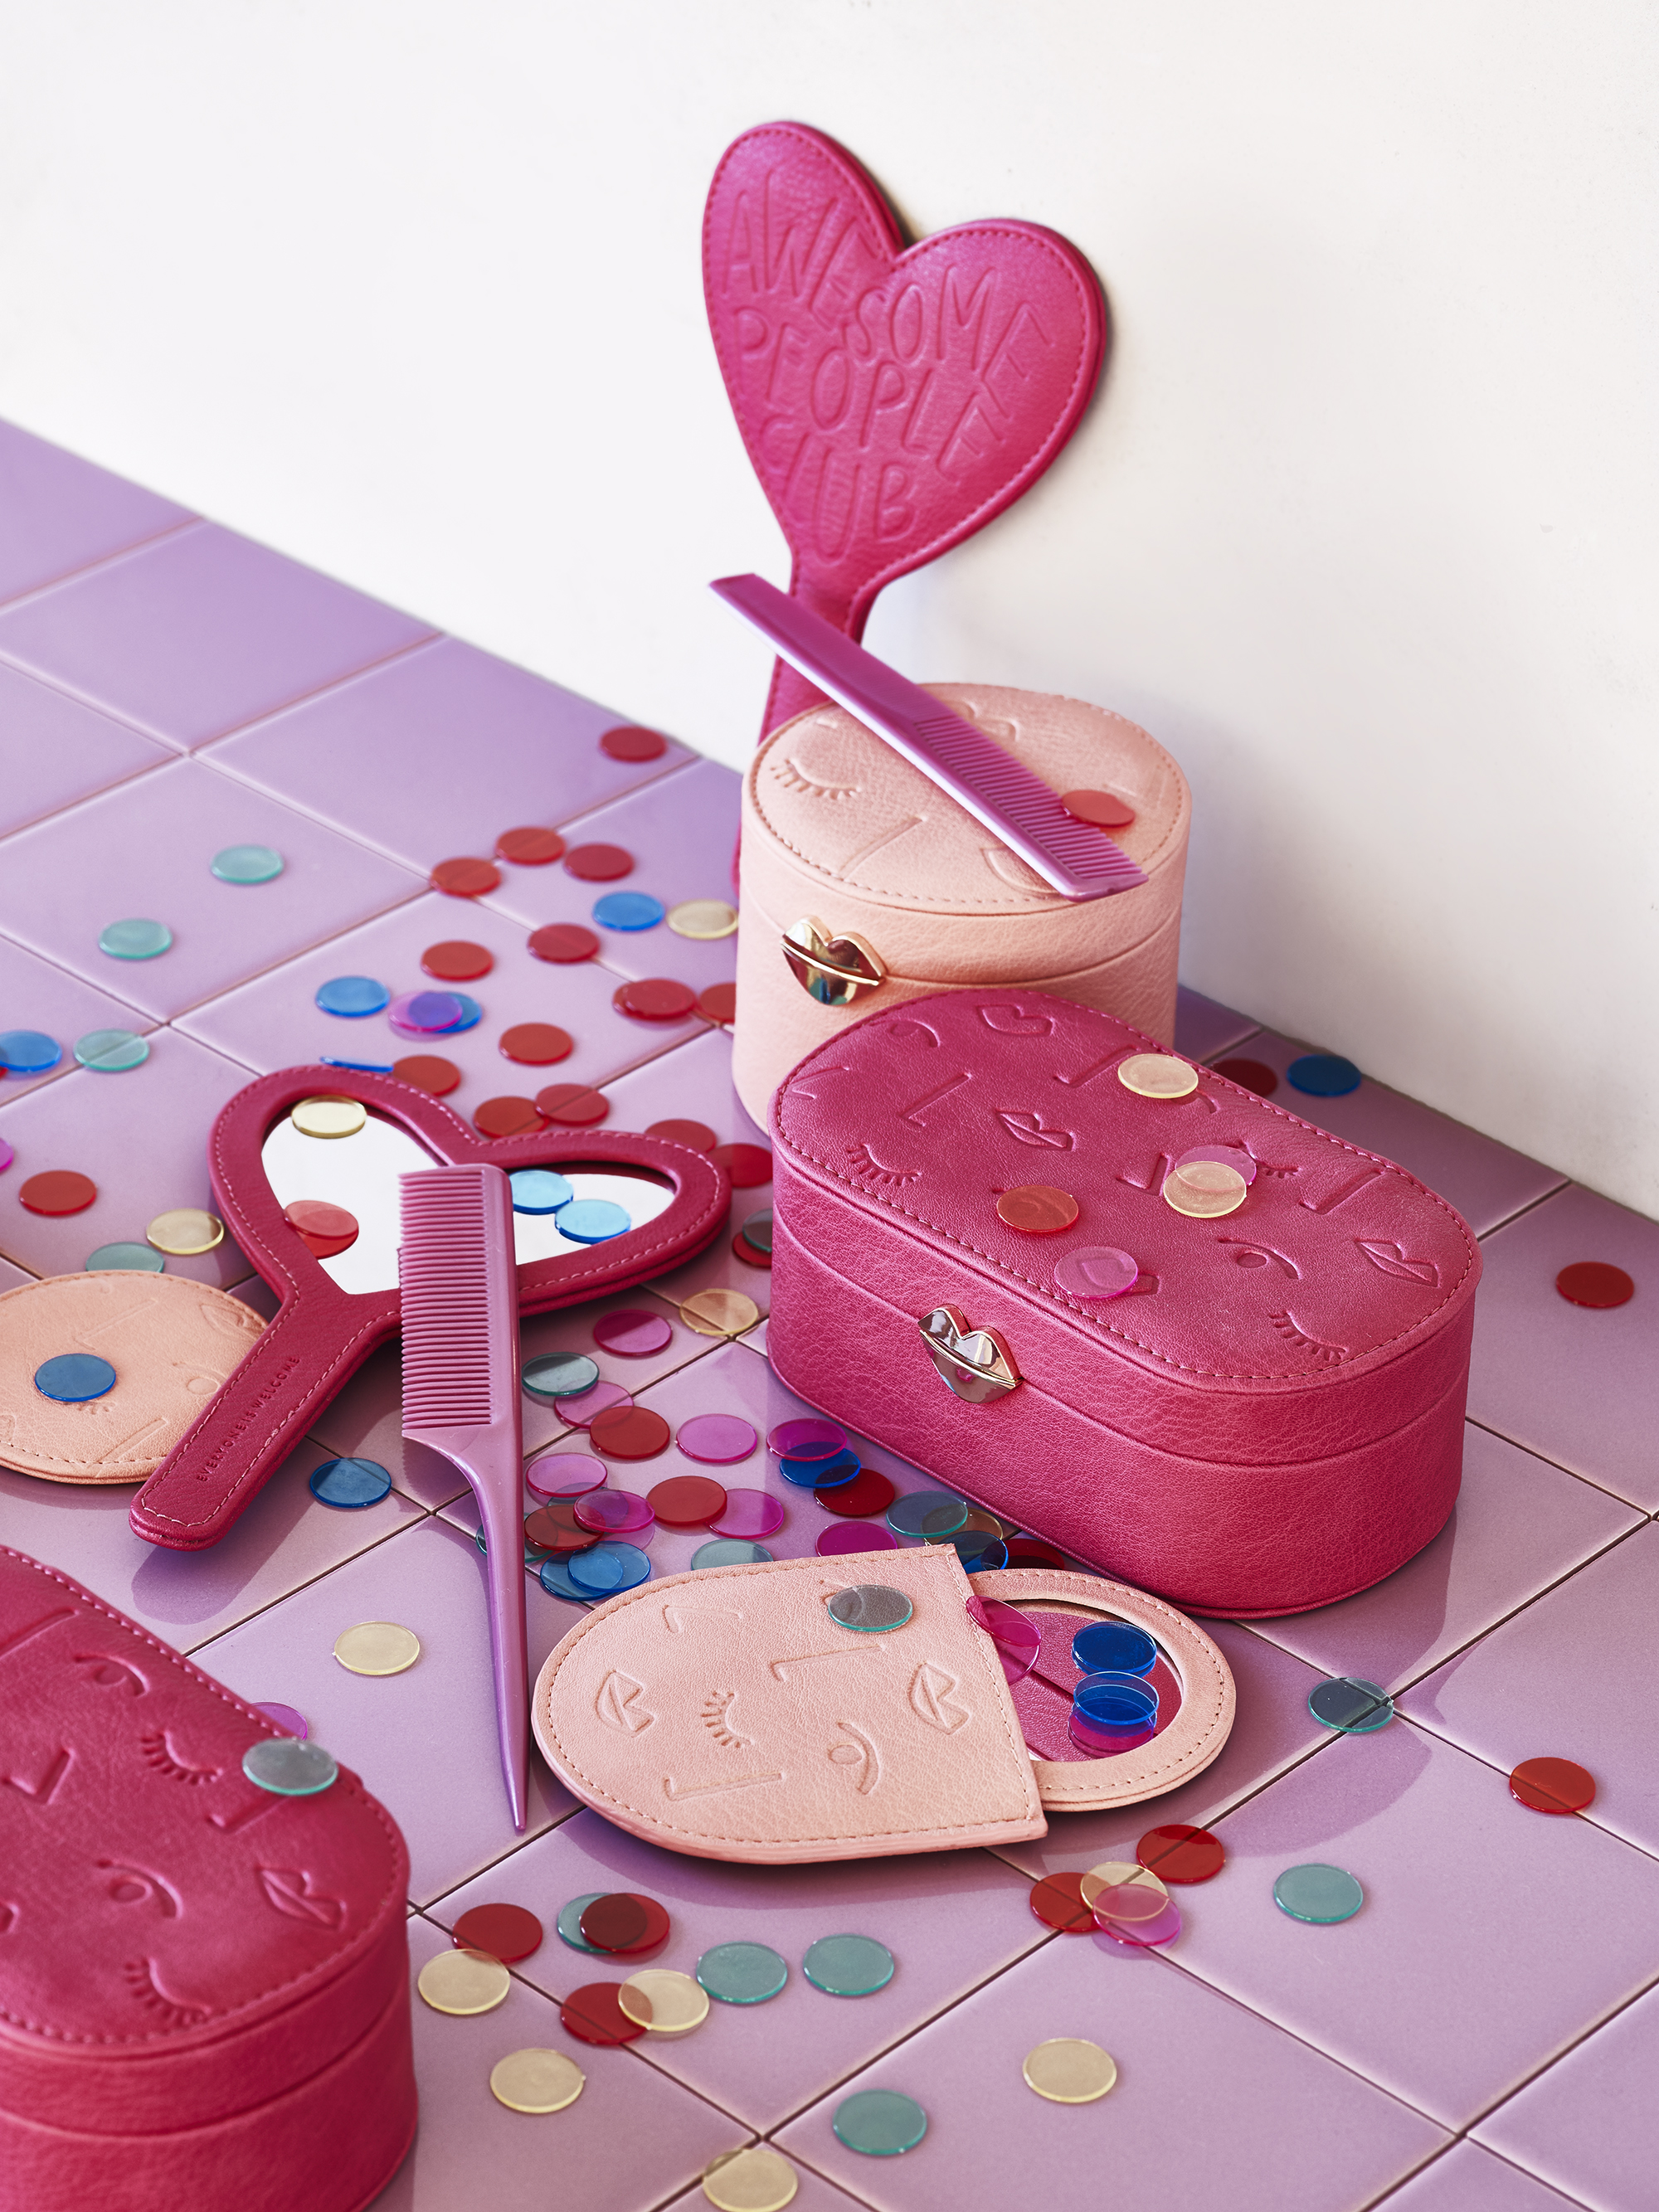 Awesome People Heart Compact Mirror £12; Play Oblong Jewellery Box £22; Play Compact Mirror £10 DUE FEBRUARY